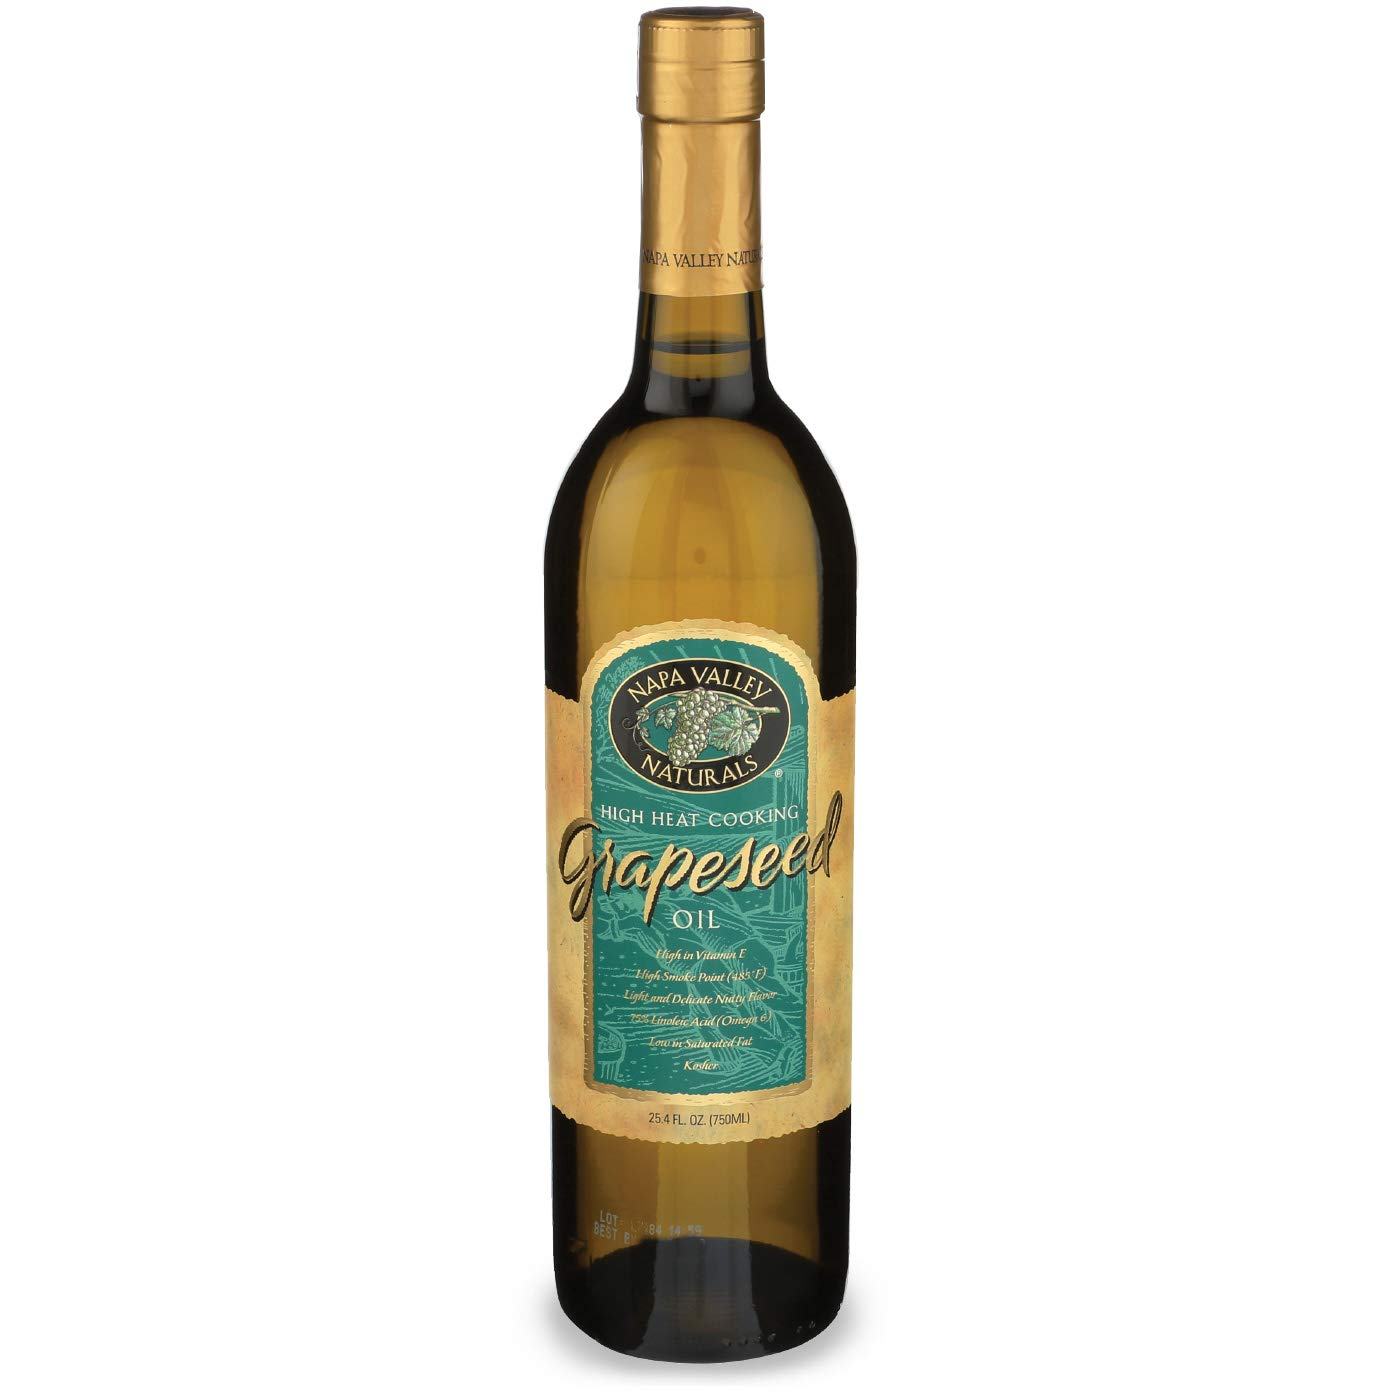 Napa Valley Naturals Grapeseed Oil, 25.4 Ounce (2-Pack) by Napa Valley Naturals